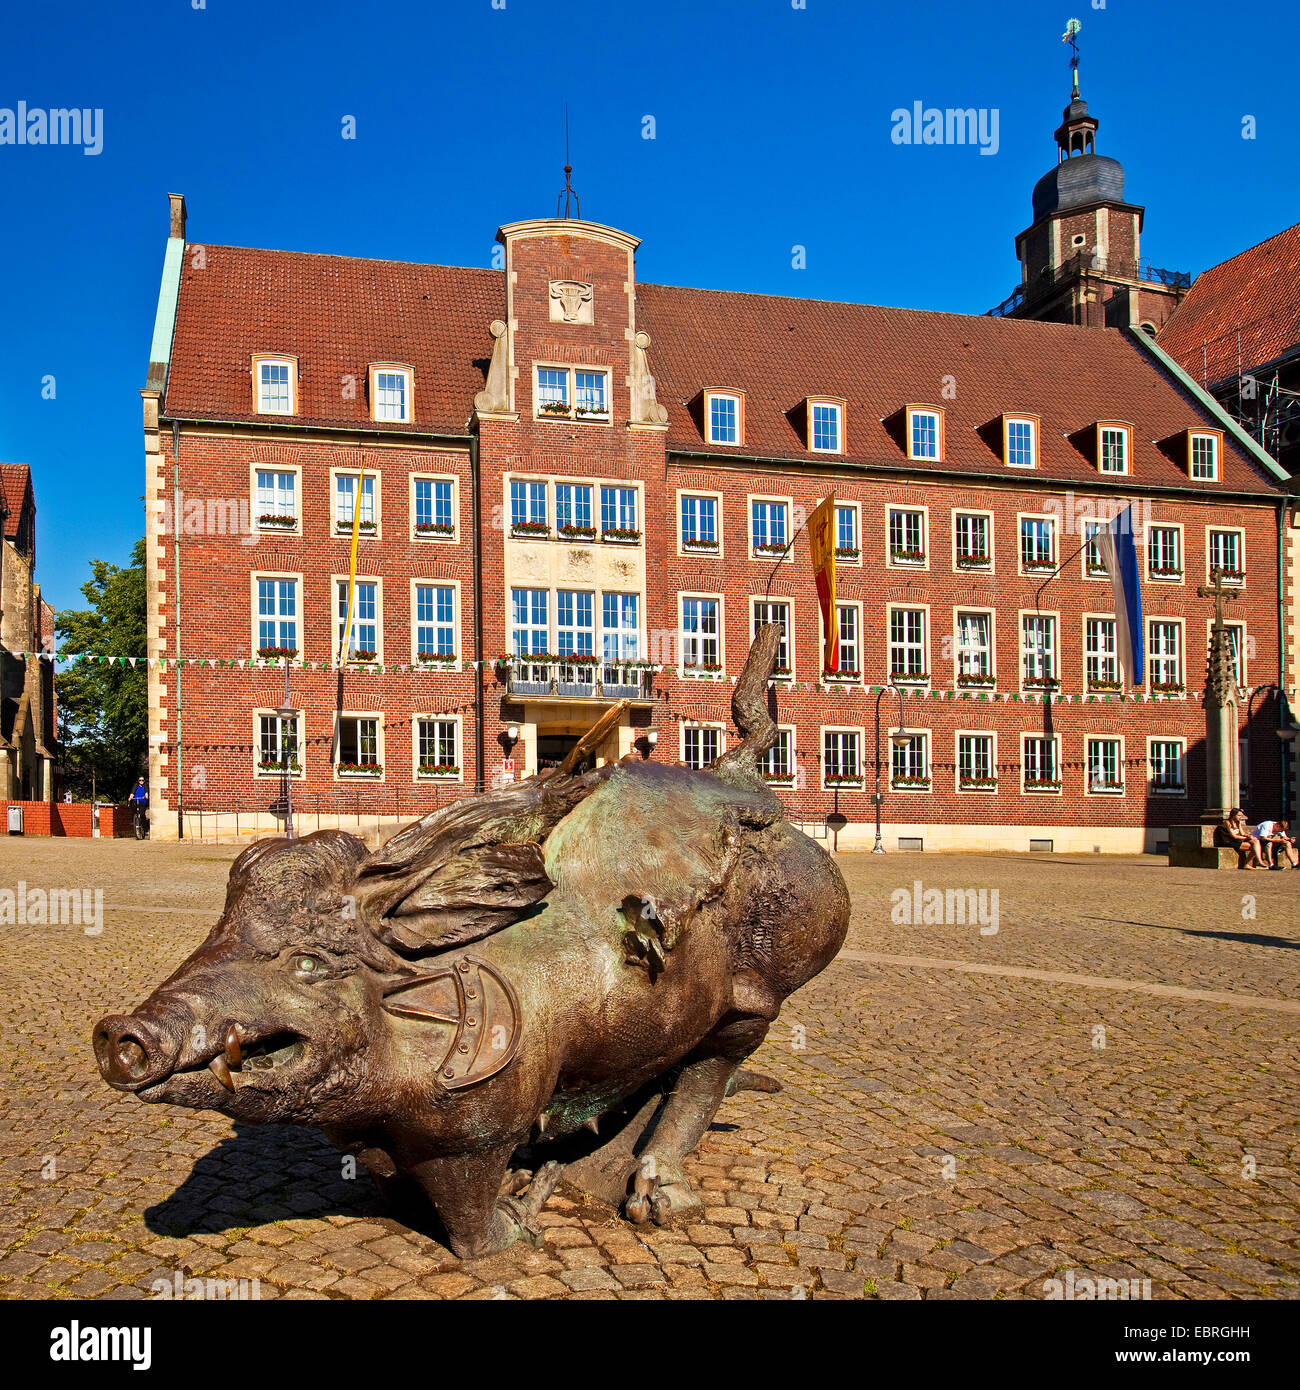 market place and town hall, wild soar sculpture in foreground, Germany, North Rhine-Westphalia, Coesfeld - Stock Image